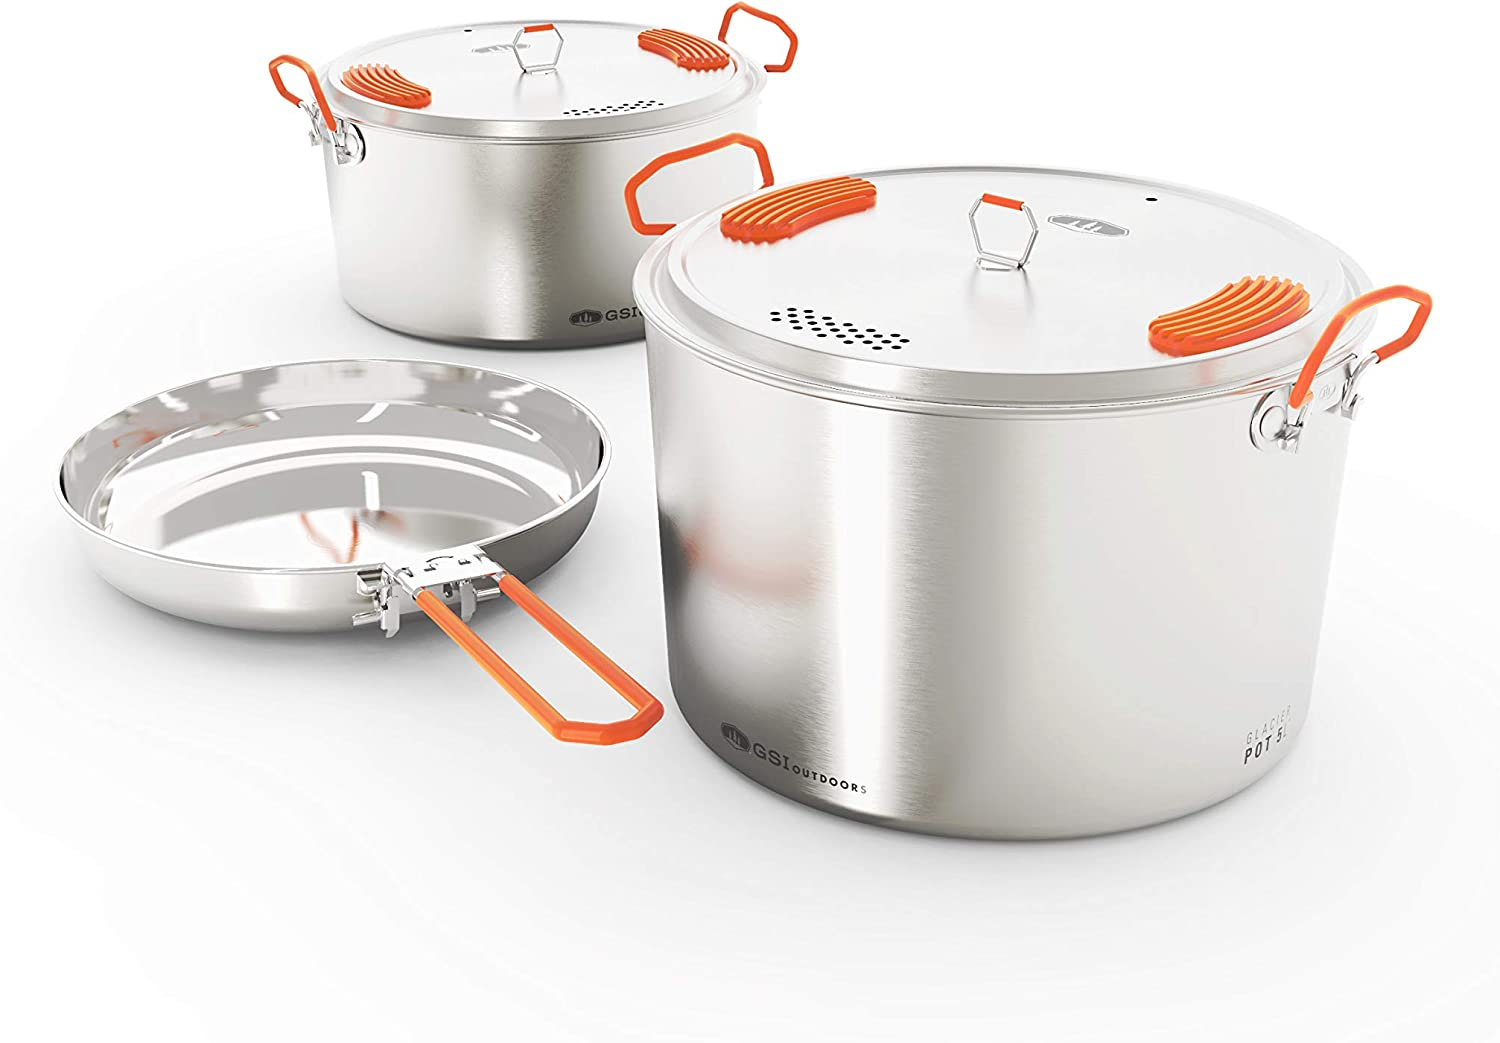 GSI Outdoors Stainless Base Camper - 3 Piece Cookset for Camping and Outdoors